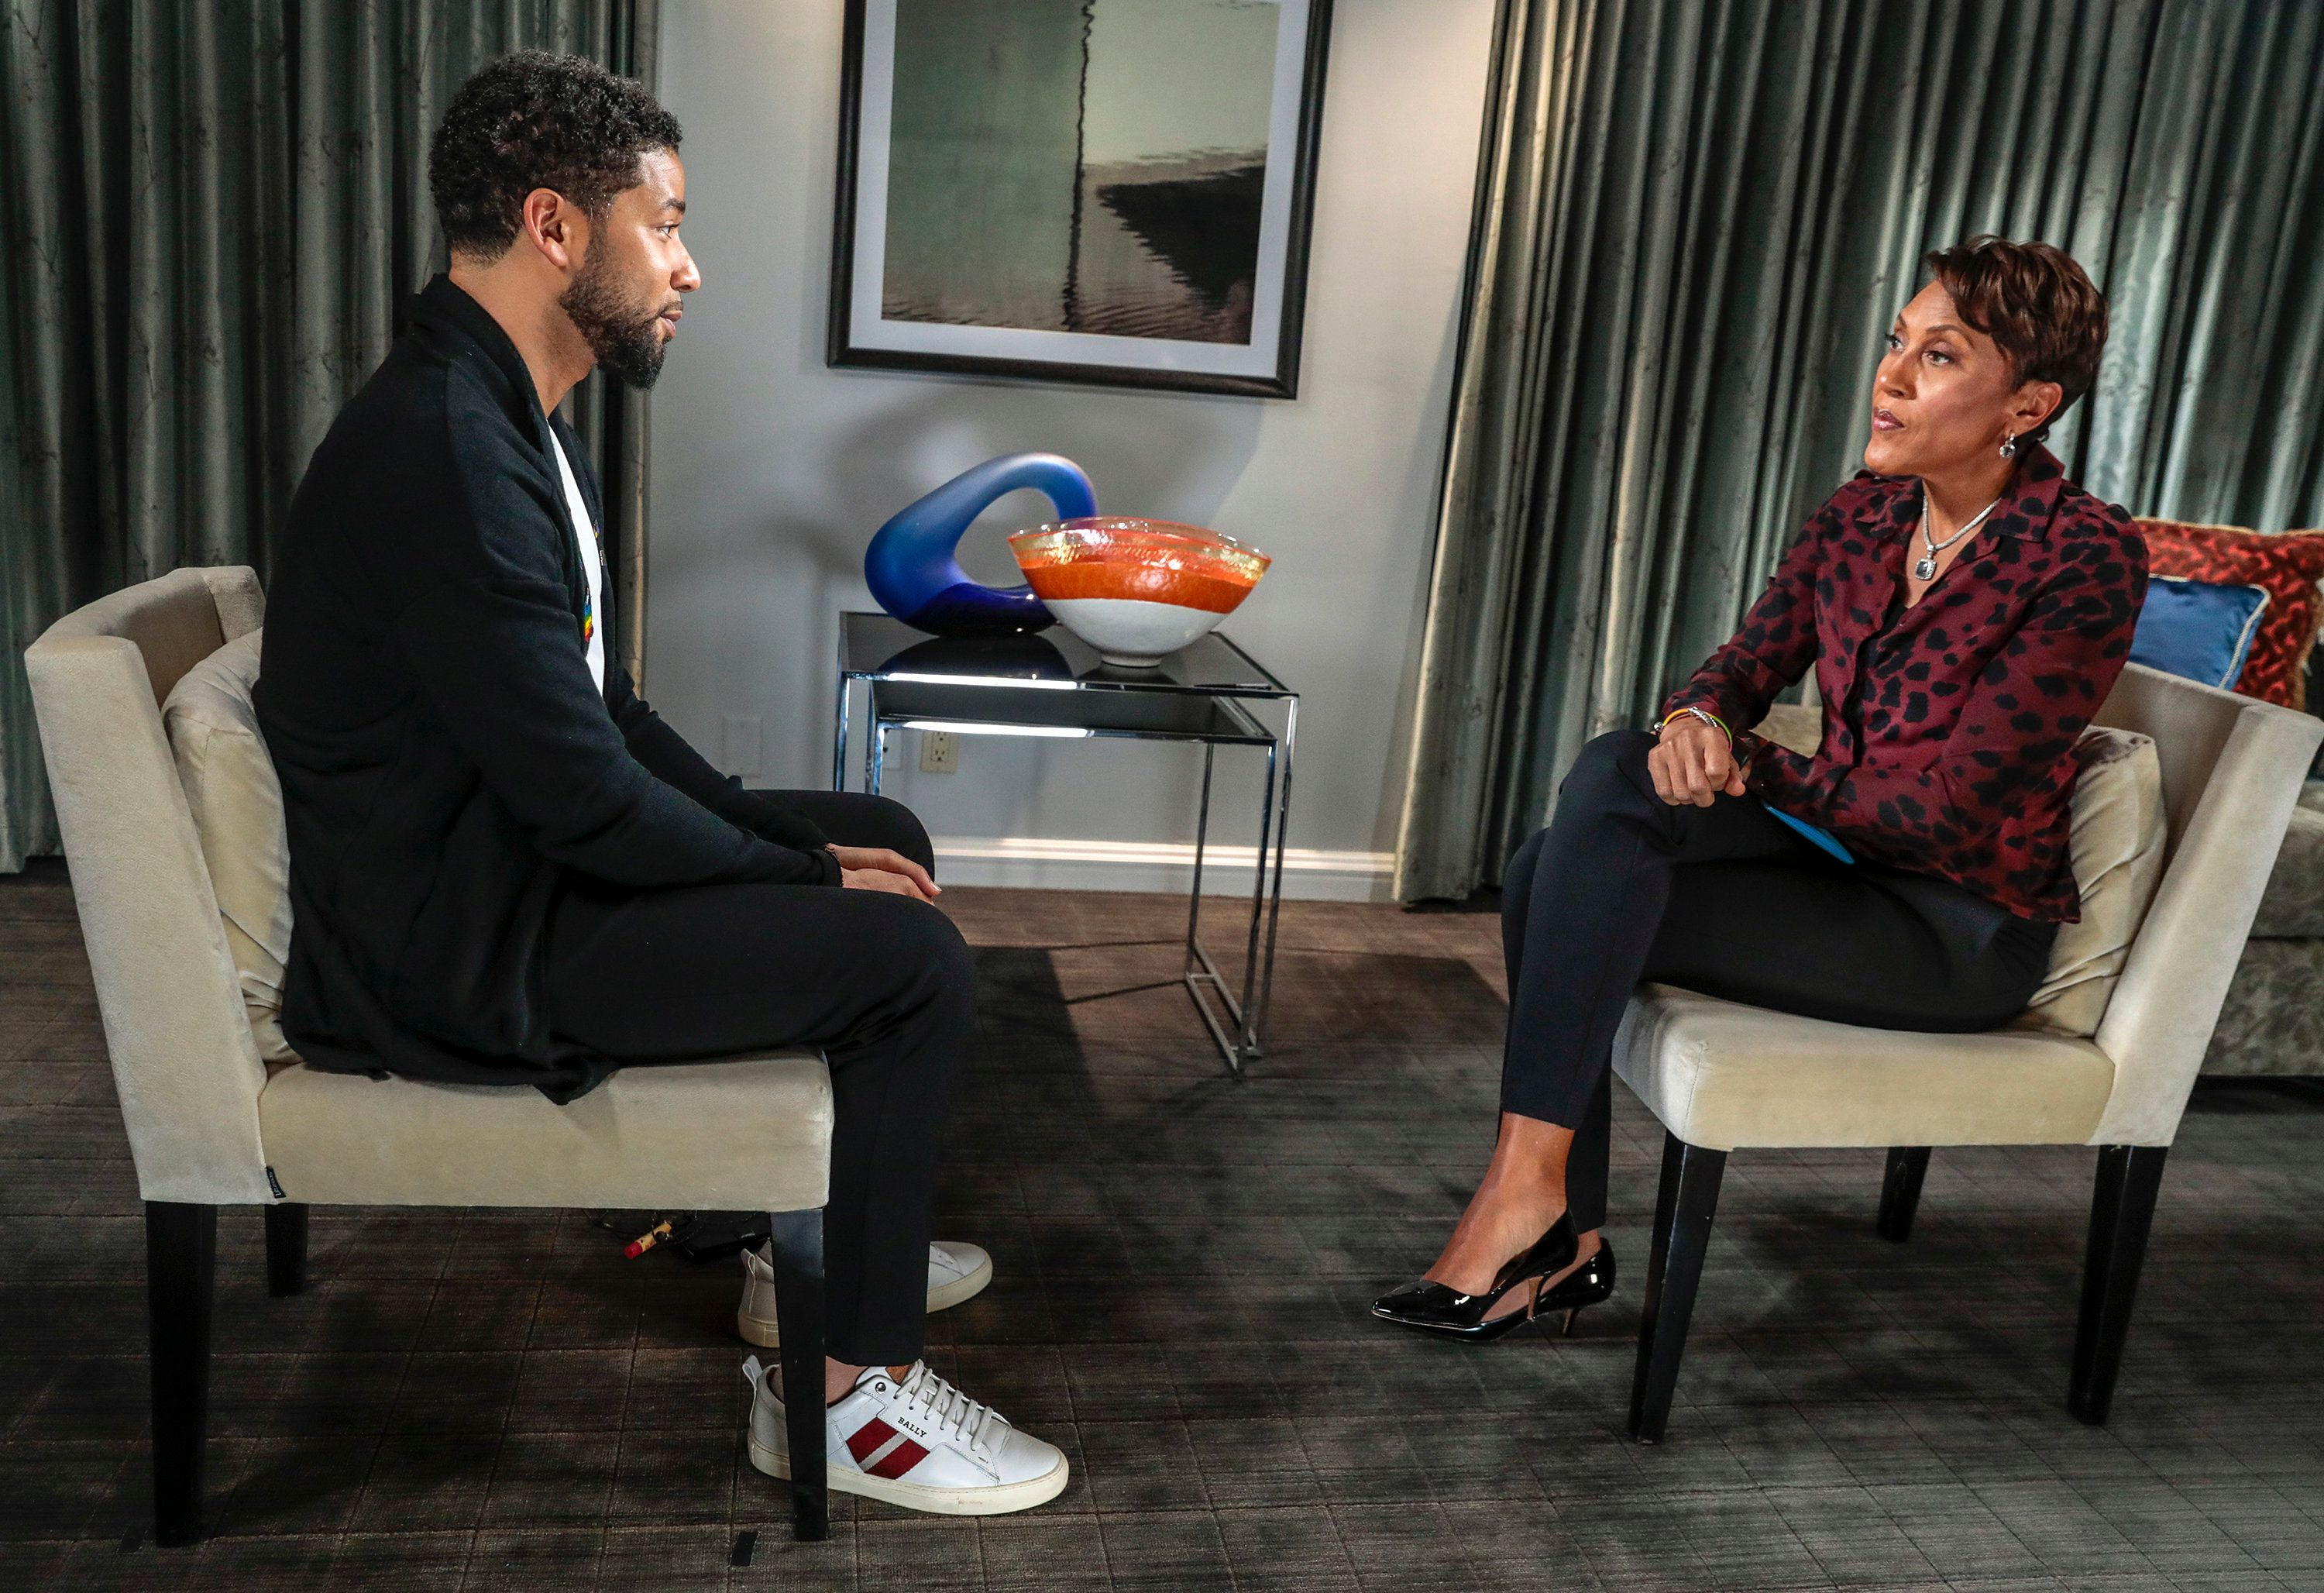 GOOD MORNING AMERICA - Robin Roberts interview with actor Jussie Smollett airs Thursday, February 14, 2019 on ABC's 'Good Morning America.' (Photo by Stephen Green/ABC via Getty Images) JUSSIE SMOLLETT, ROBIN ROBERTS